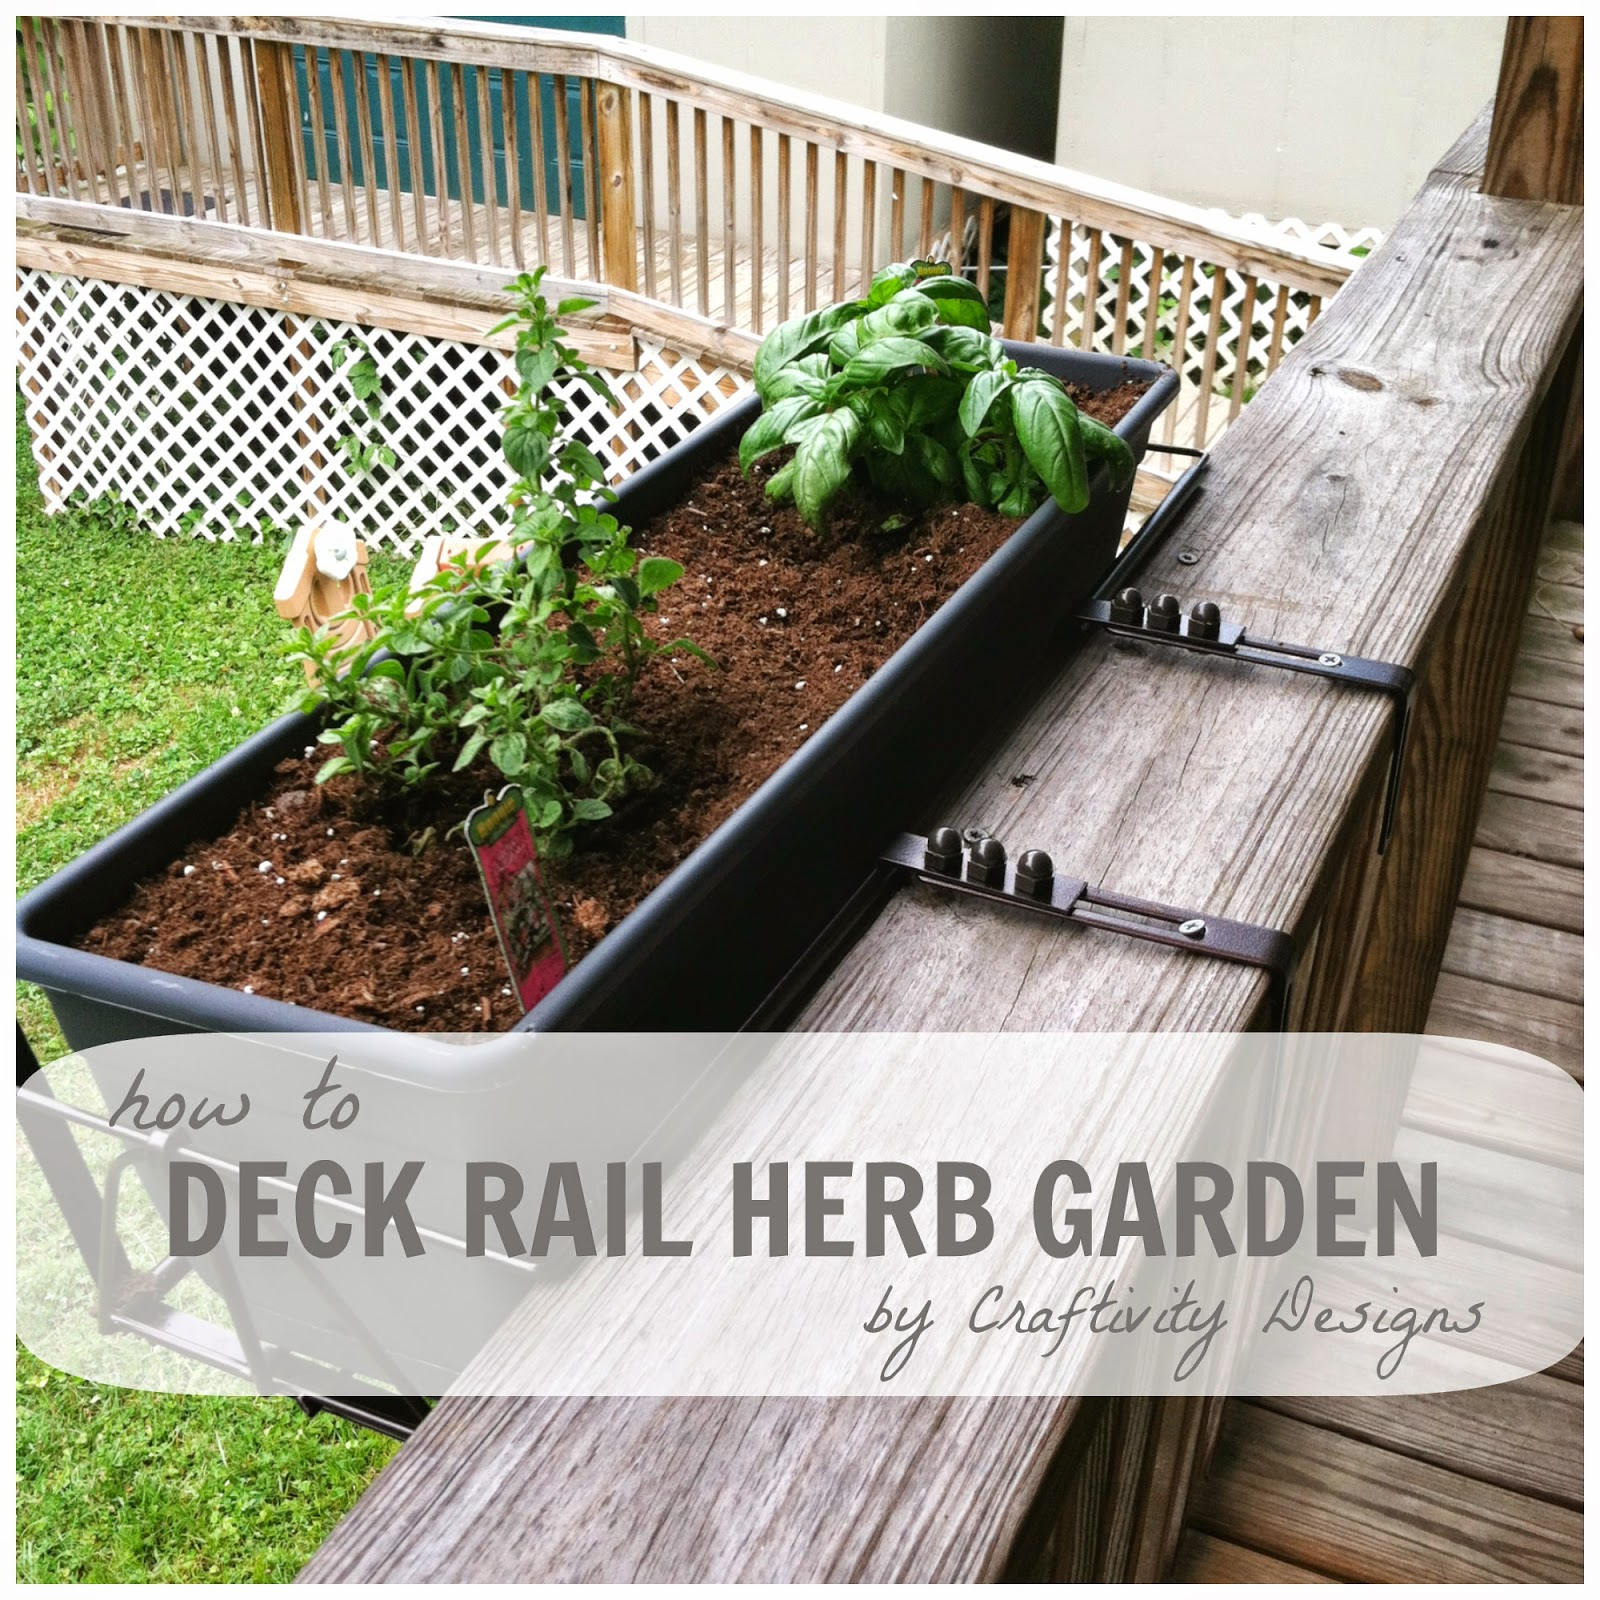 32 Best Deck Rail Planters Images On Pinterest: How To // A Deck Rail Herb Garden